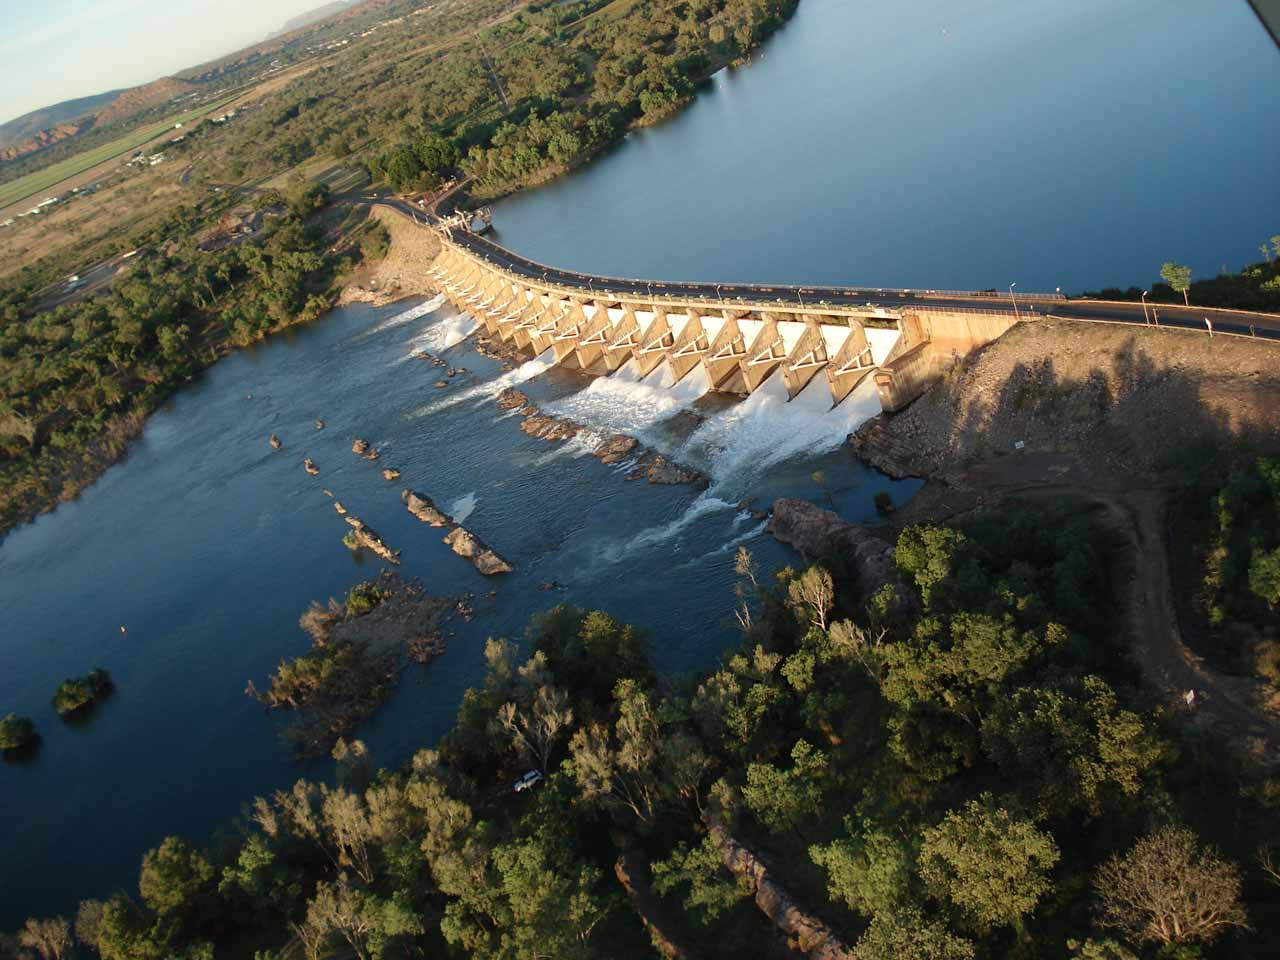 The dam holding up the Ord River